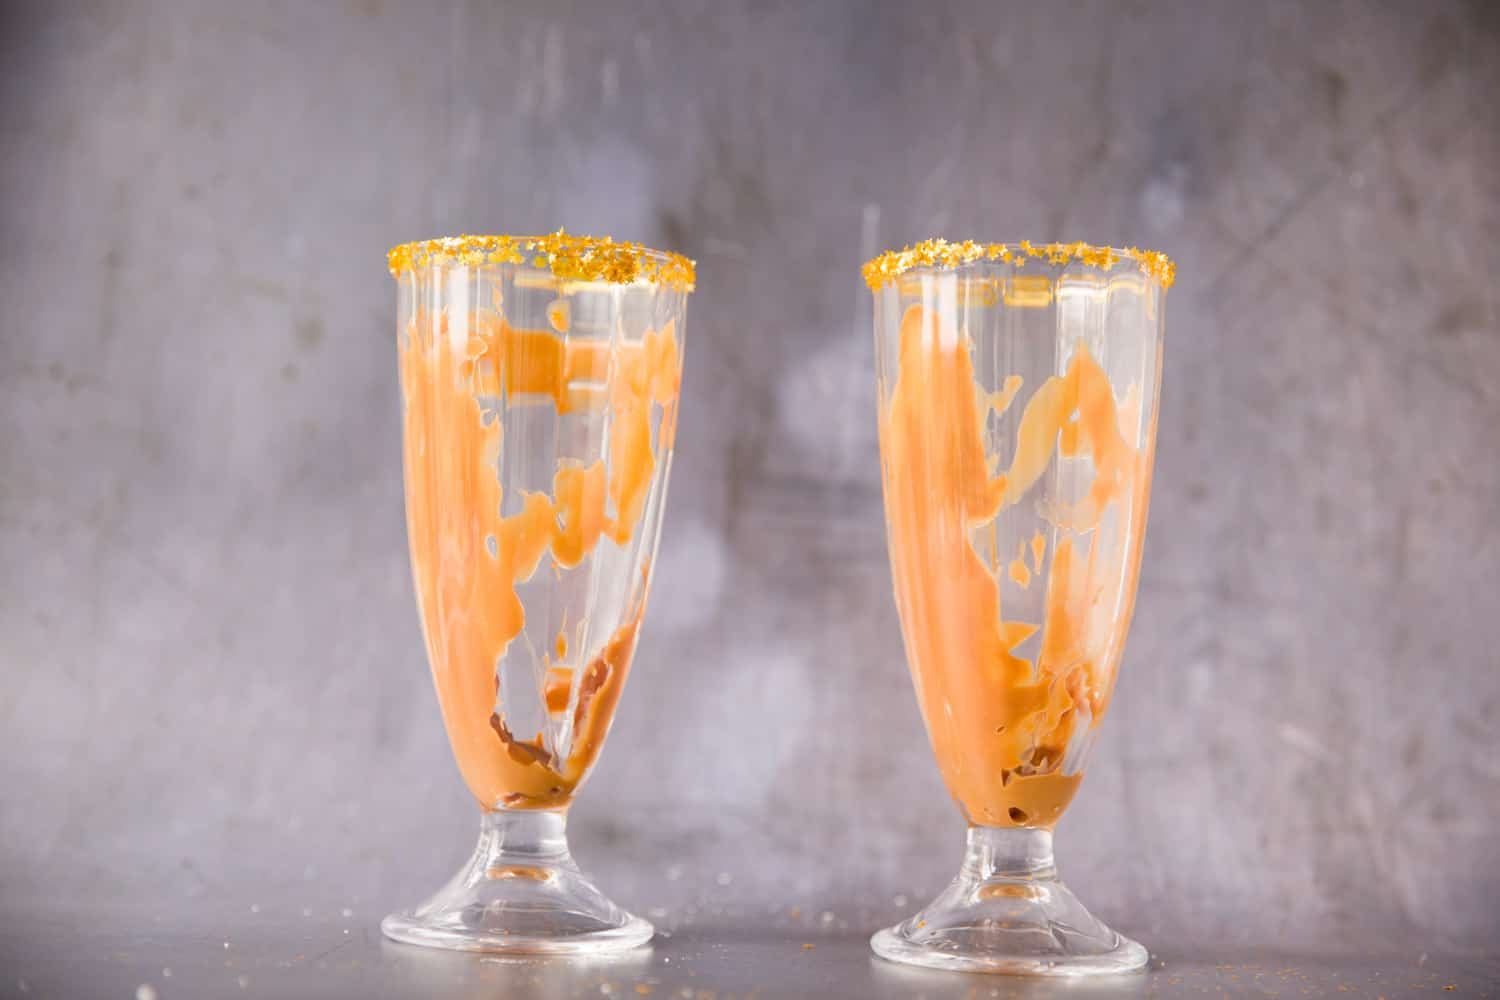 Two glasses filled with caramel sauce